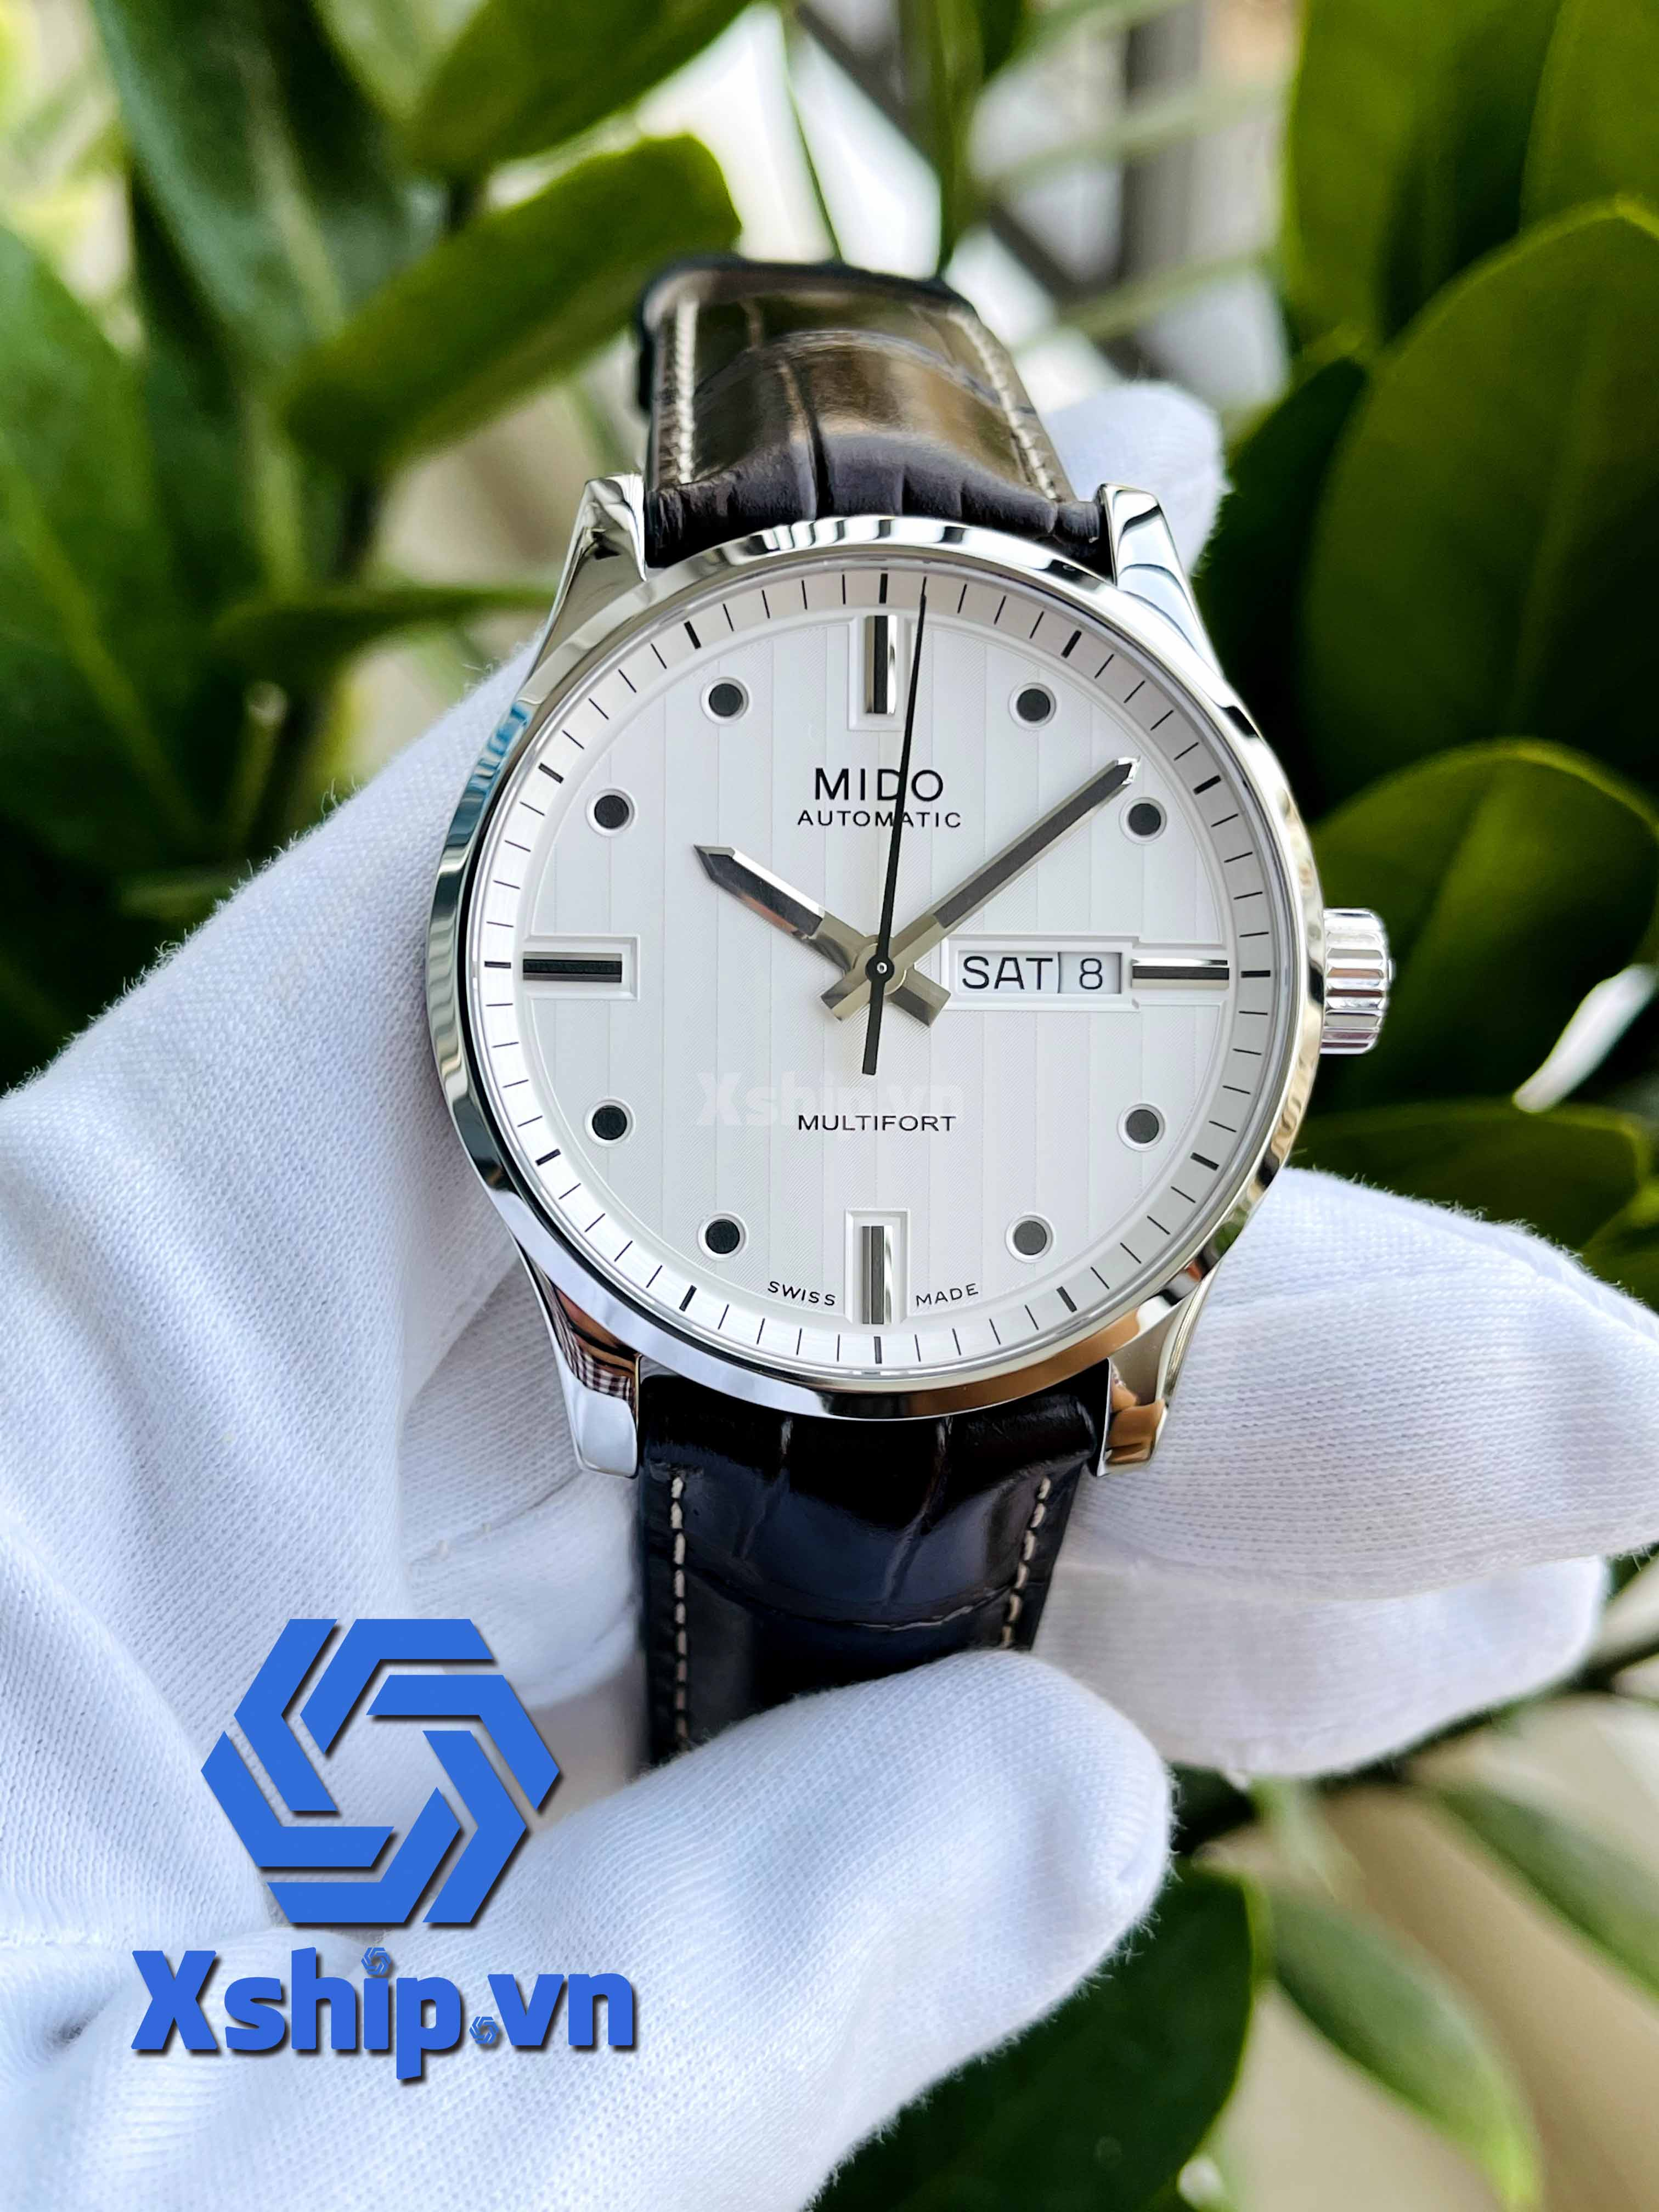 Mido Multifort Automatic Silver Dial M005.430.16.031.80 (M0054301603180)